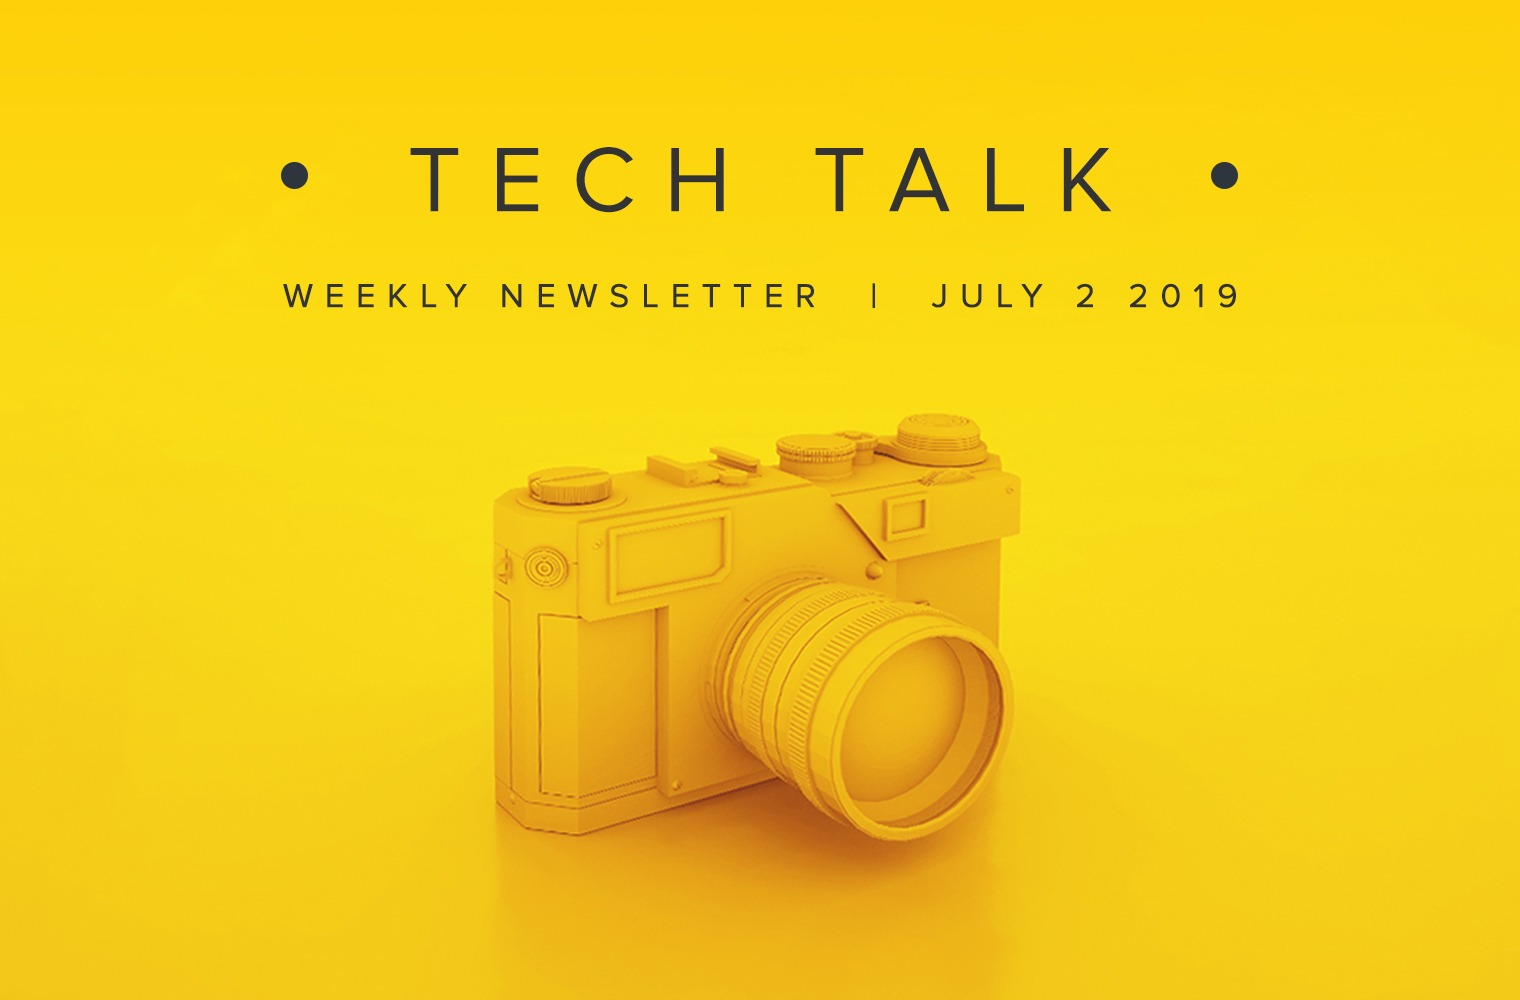 EMPIST Tech Talk Weekly Newsletter: Tuesday, July 2, 2019